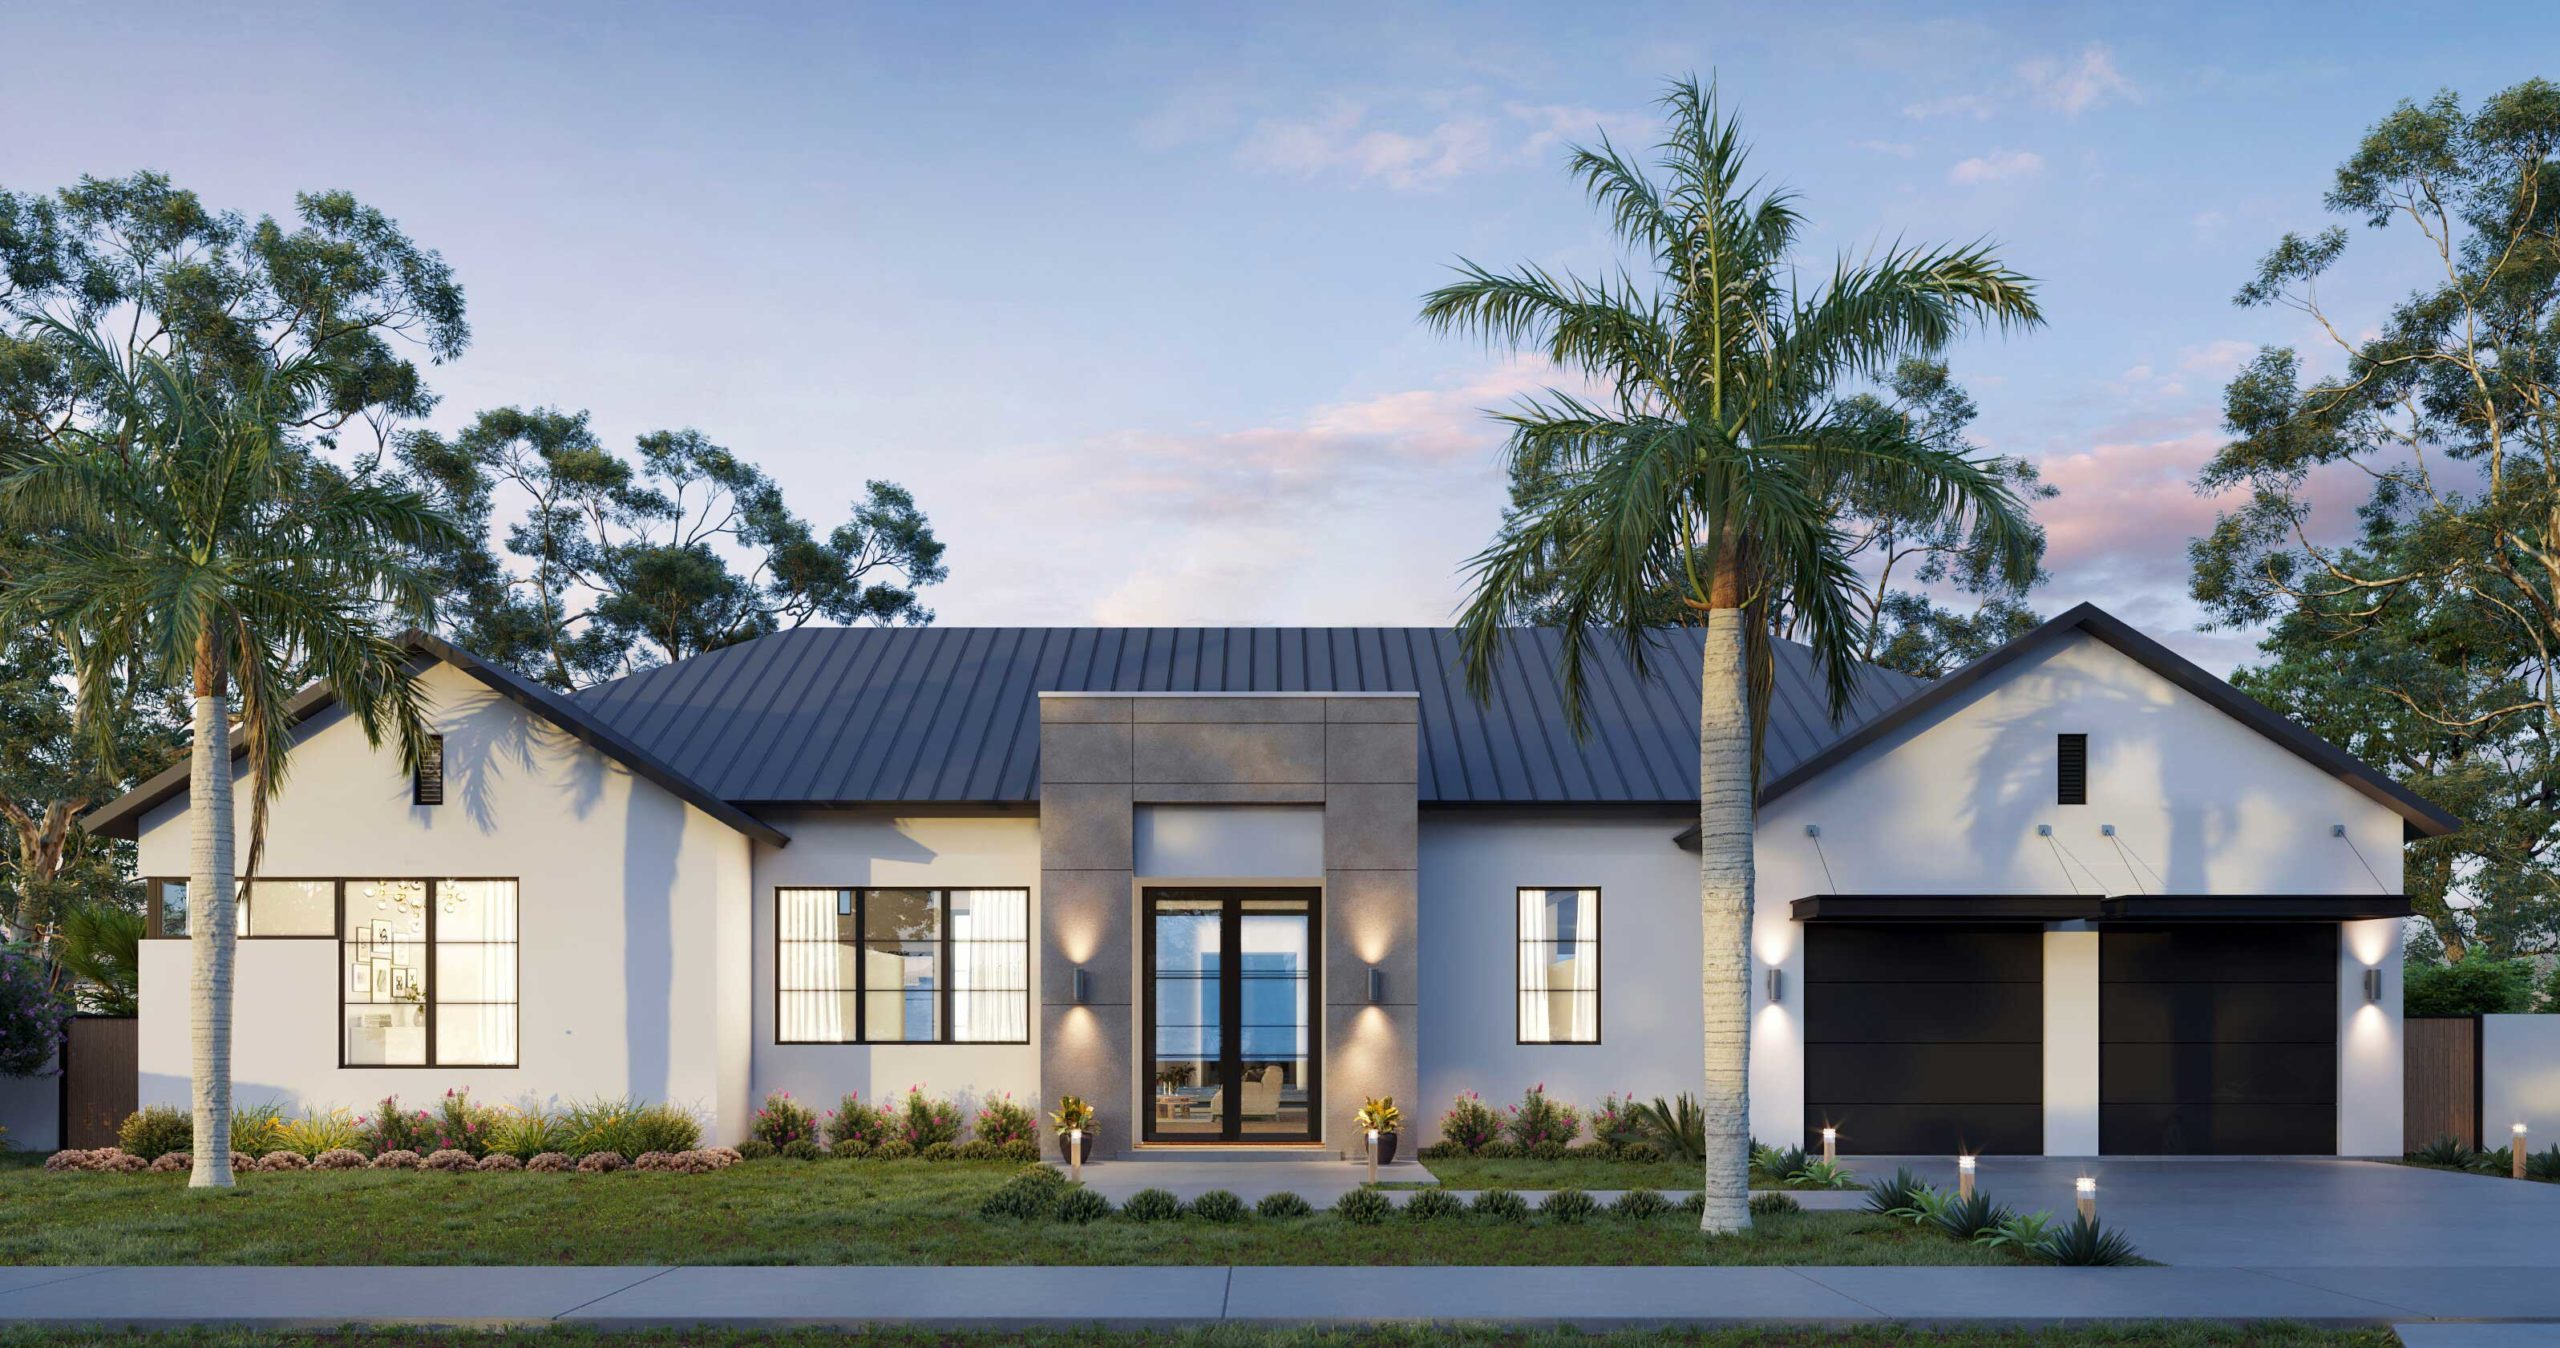 NEW HOMES COMING SOON TO DELRAY BEACH